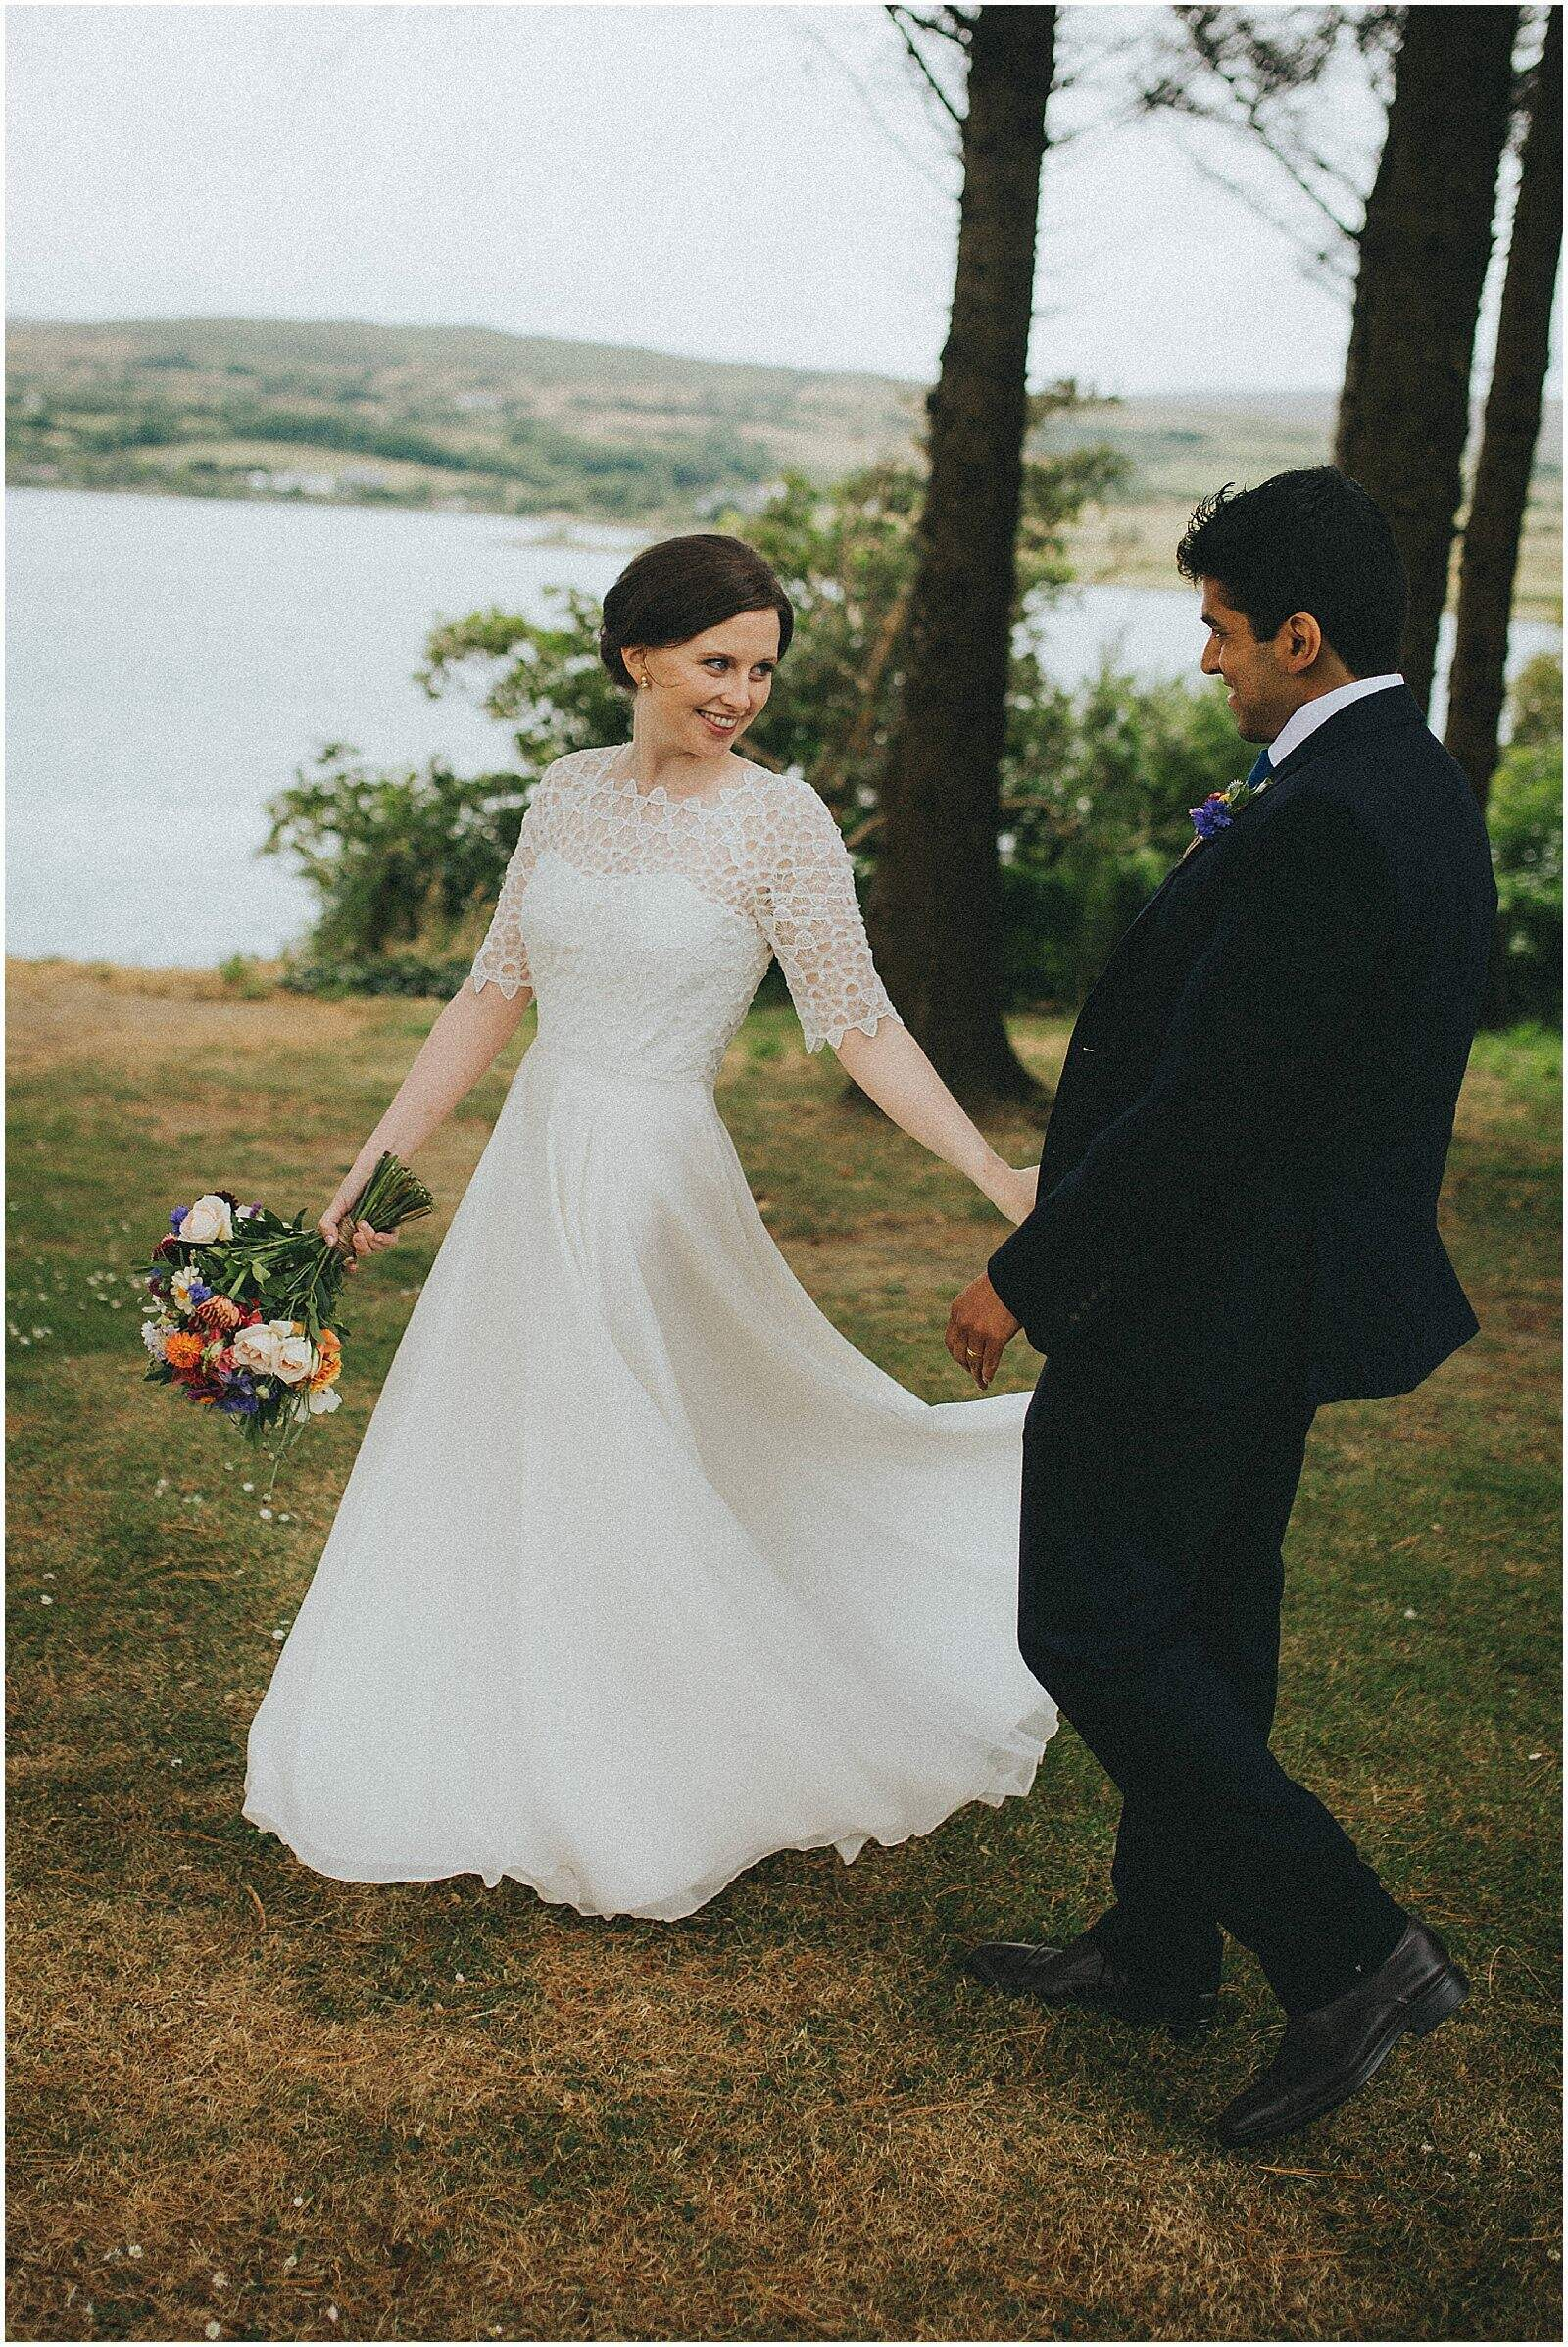 BLAIRSCOVE HOUSE – NÓRÍDE AND RAVI 60